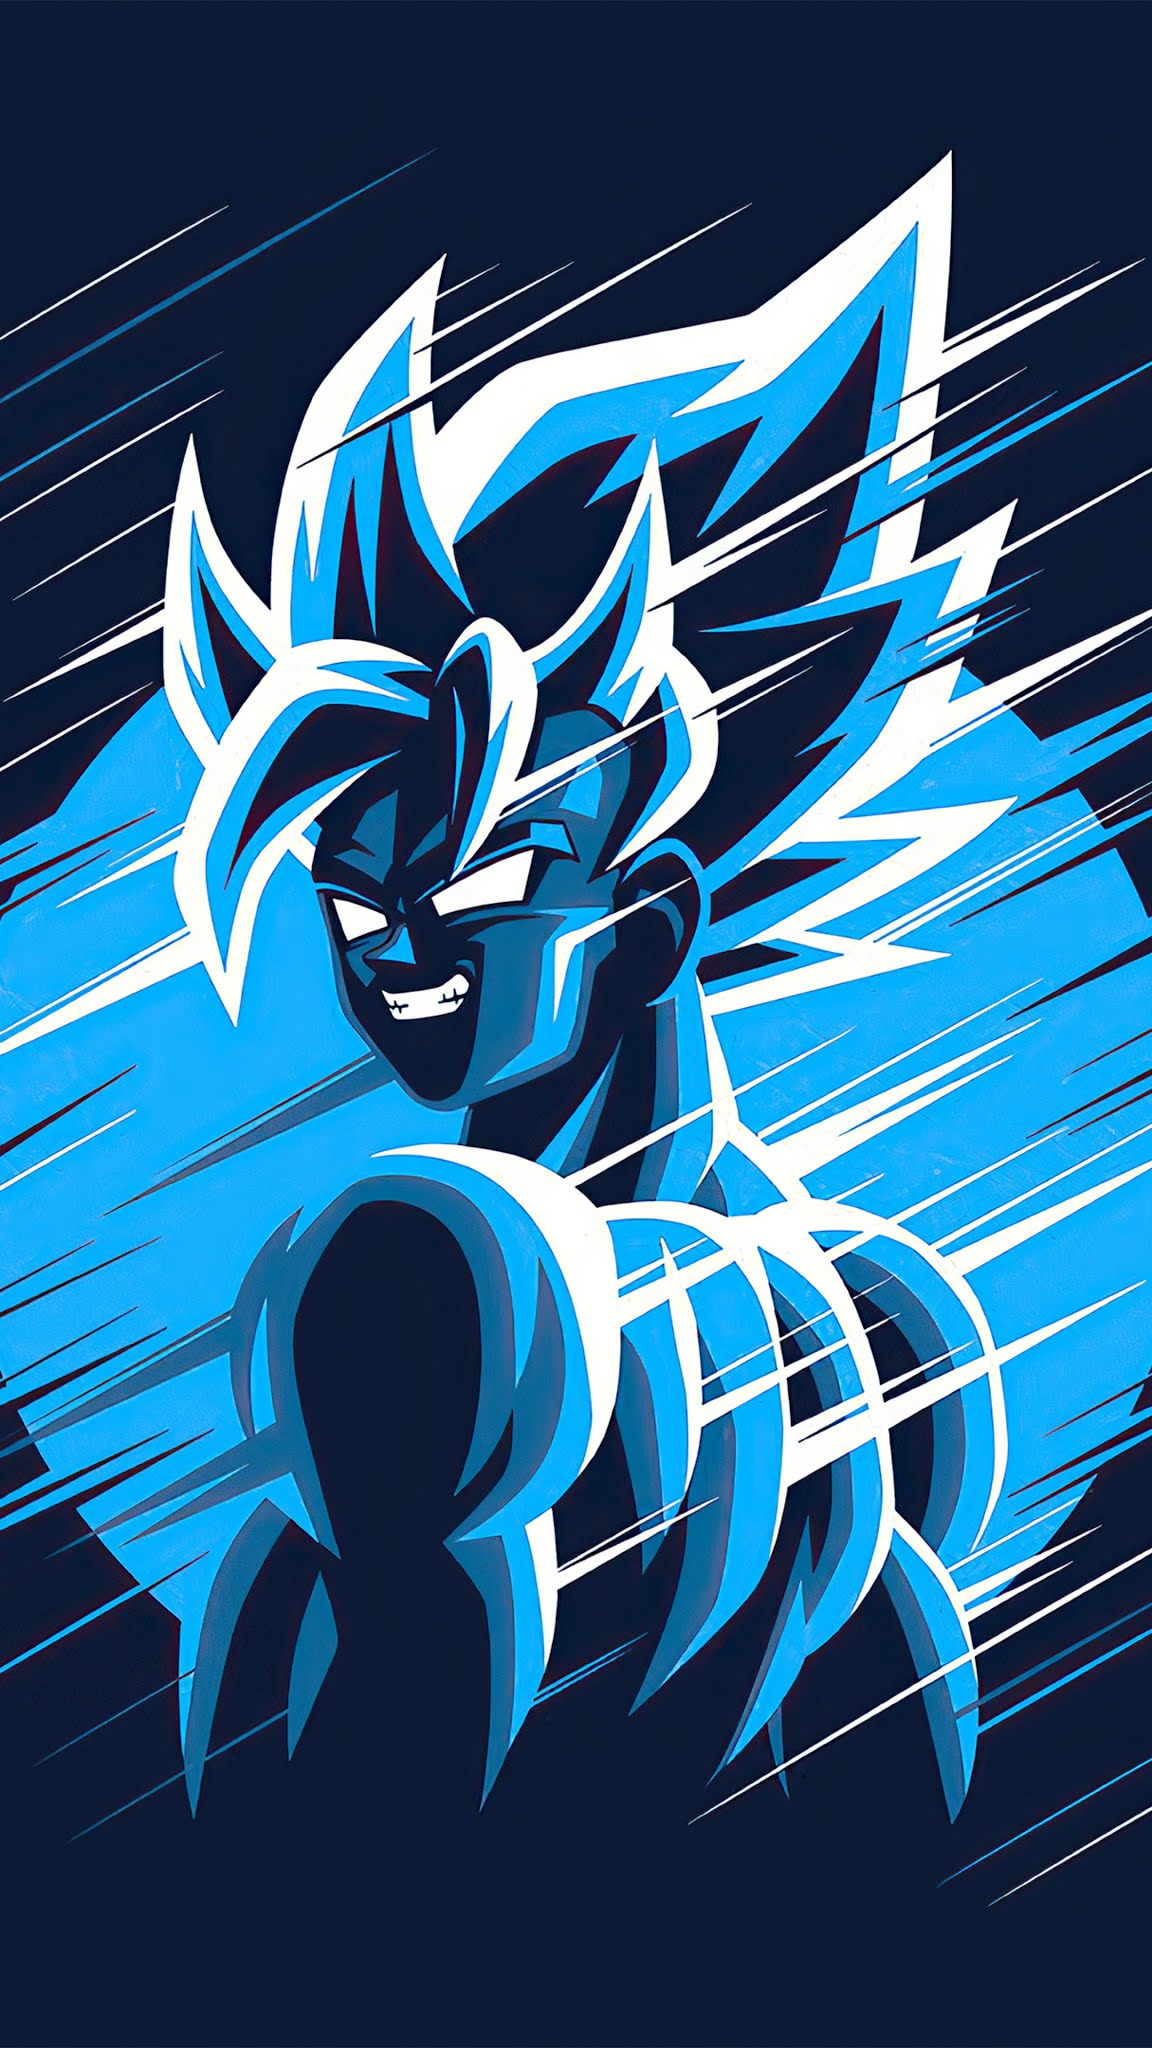 dragon ball z goku blue moon 4k mobile wallpaper